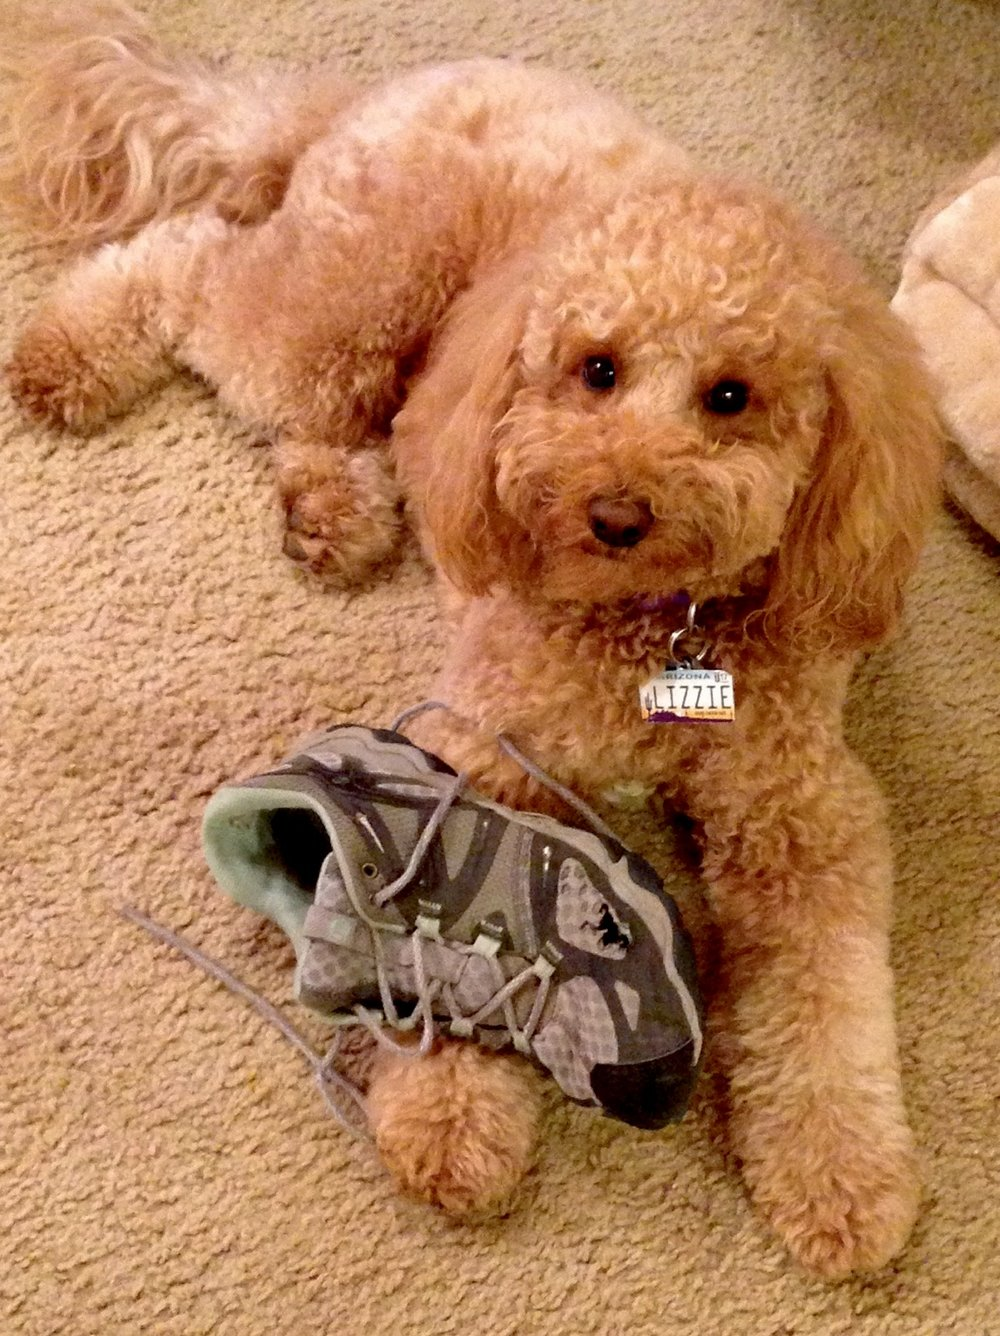 Labradoodle Lizzie's ongoing love affair with the sneakers I wear when we go for walks.